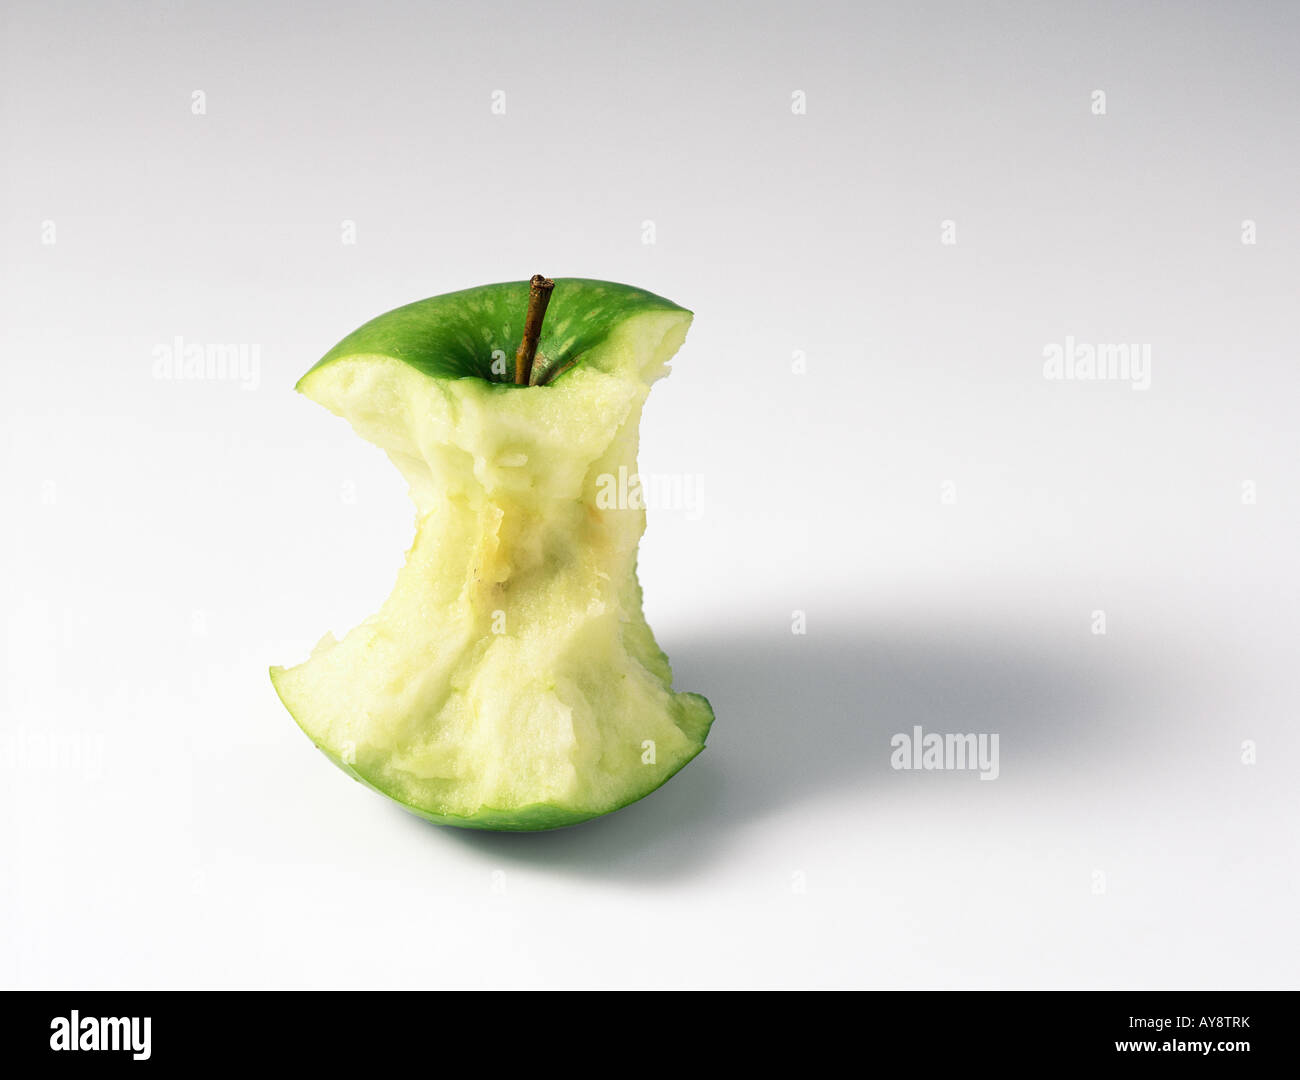 Apple core, close-up Stock Photo